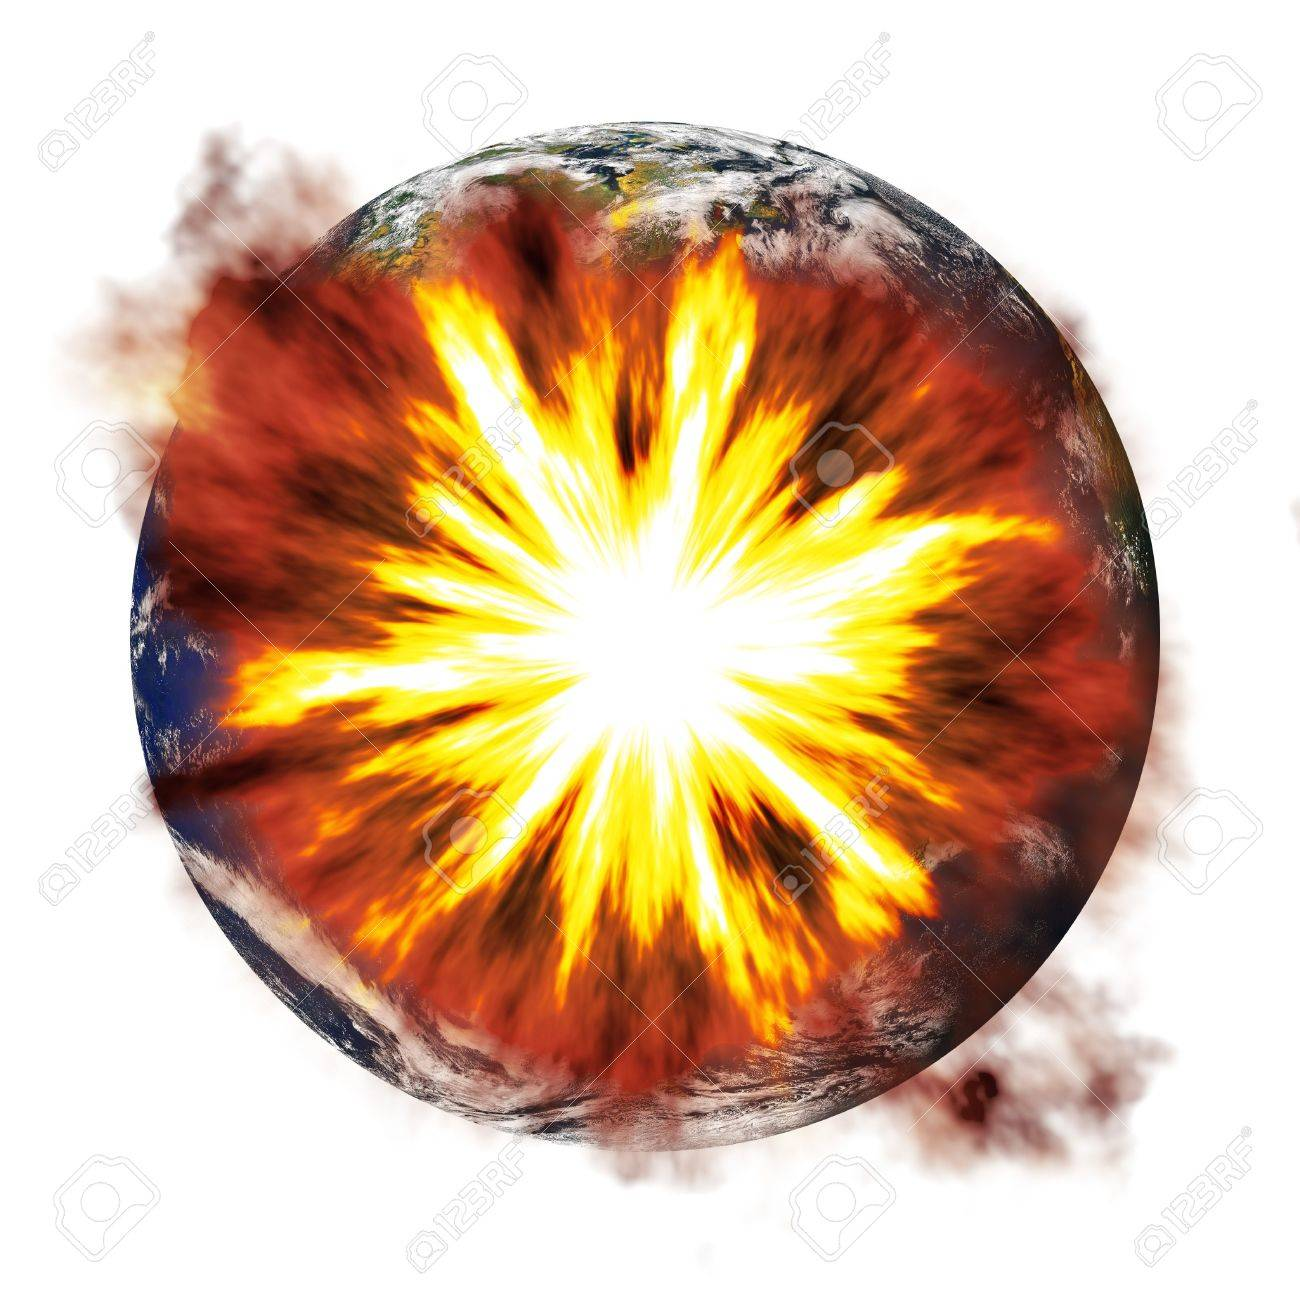 An illustration of the earth exploding from an asteroid or other nuclear weapon. Stock Illustration - 4764607